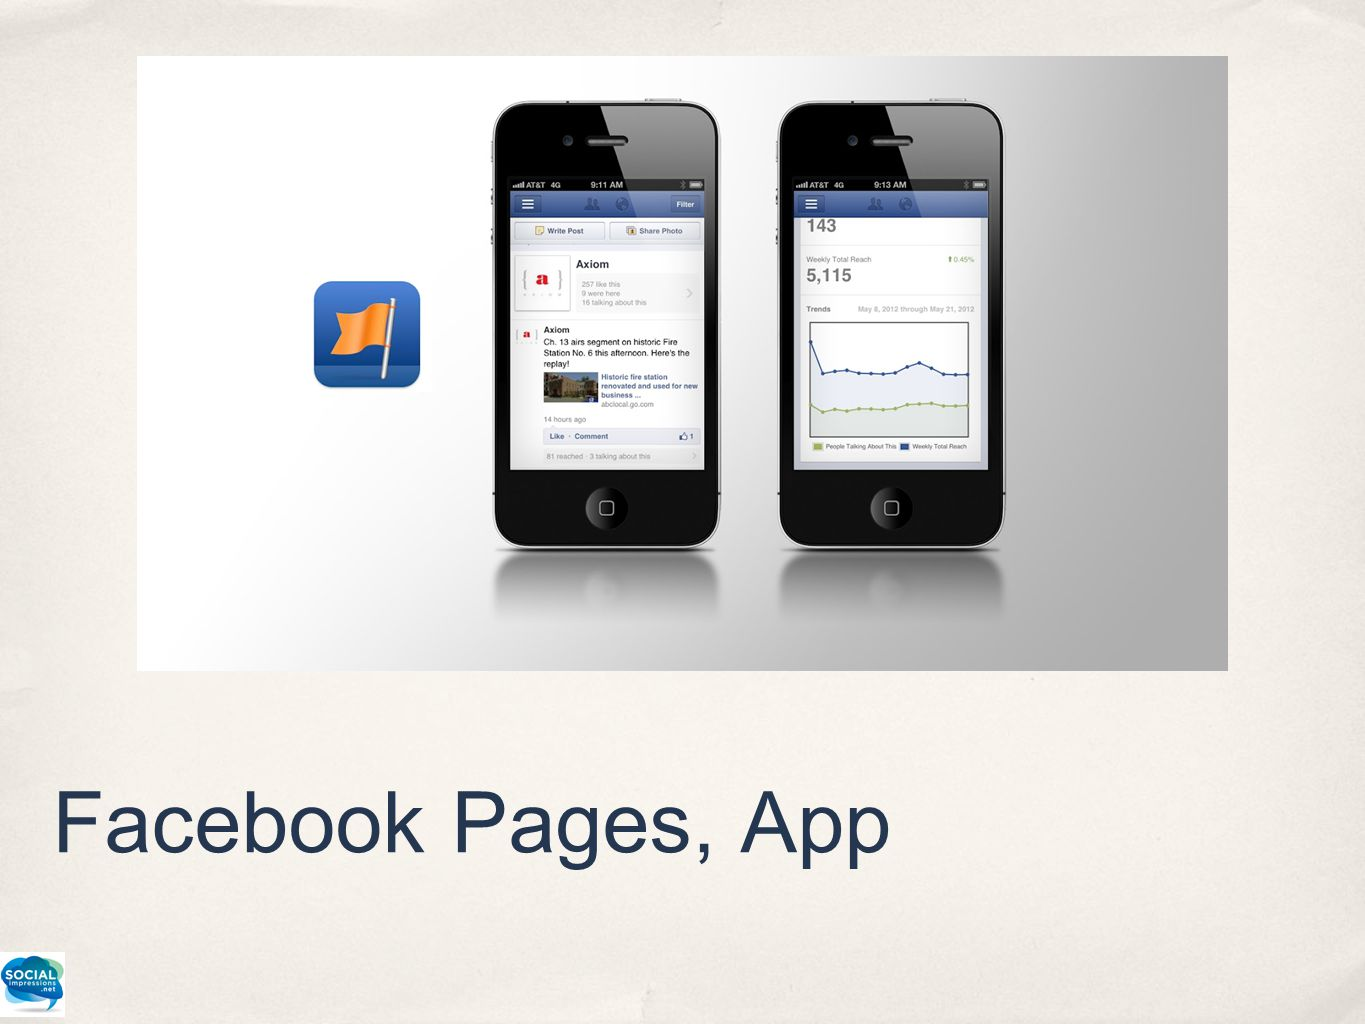 Facebook Pages, App